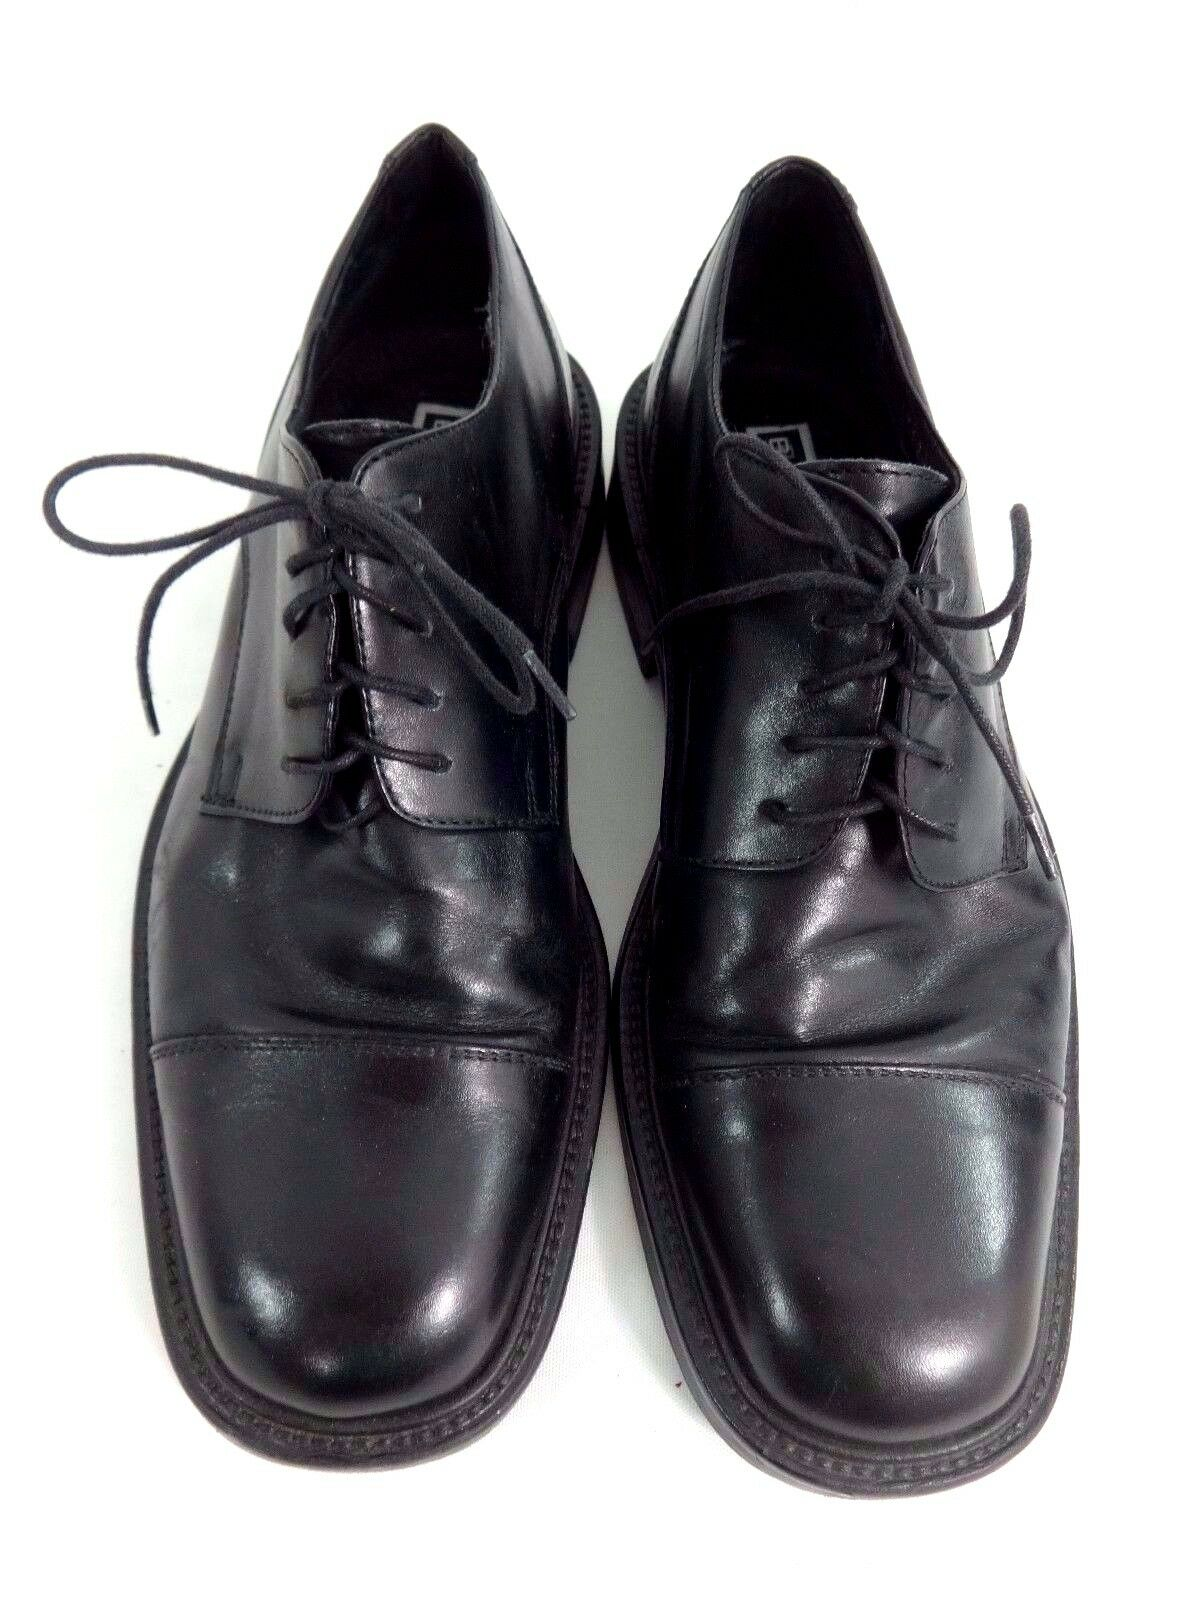 BACHRACH MENS BLACK LEATHER CAP TOE DRESS OXFORDS SHOES SIZE 40   7.5 US